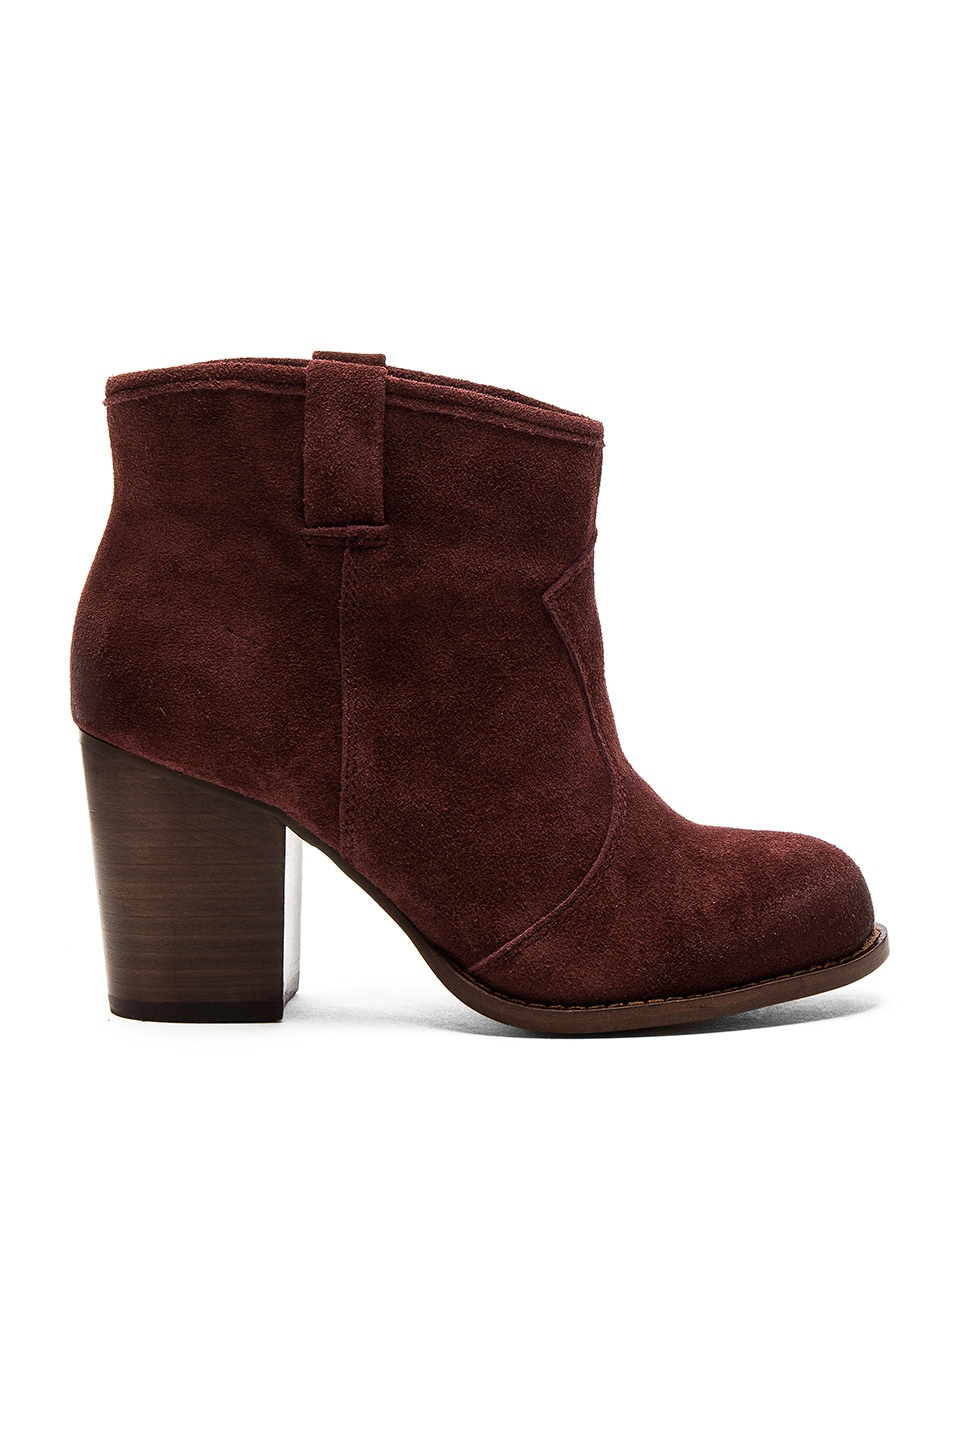 Splendid Lakota Bootie in Dark Wine